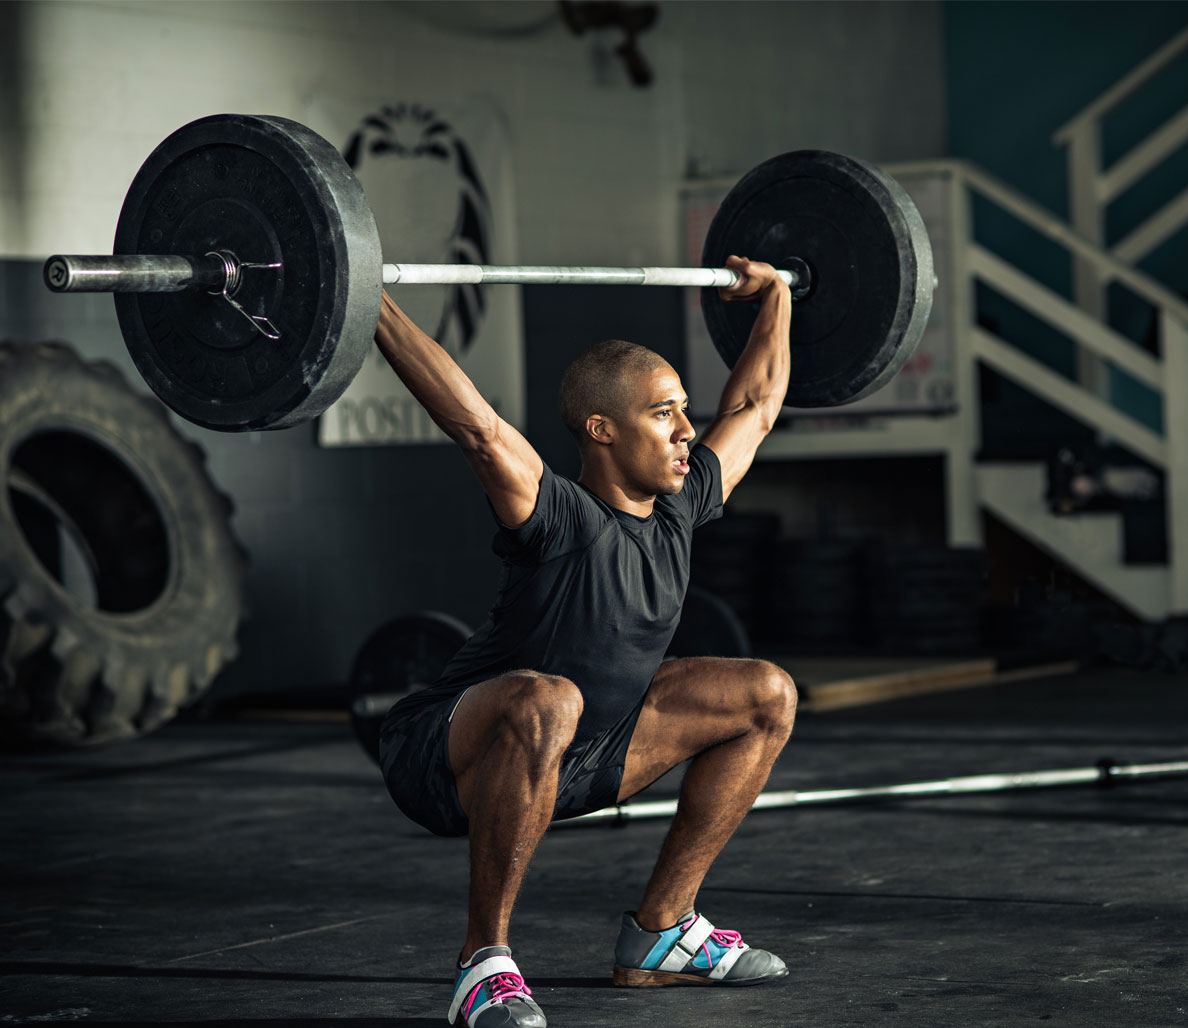 Does Functional Training Build Muscle